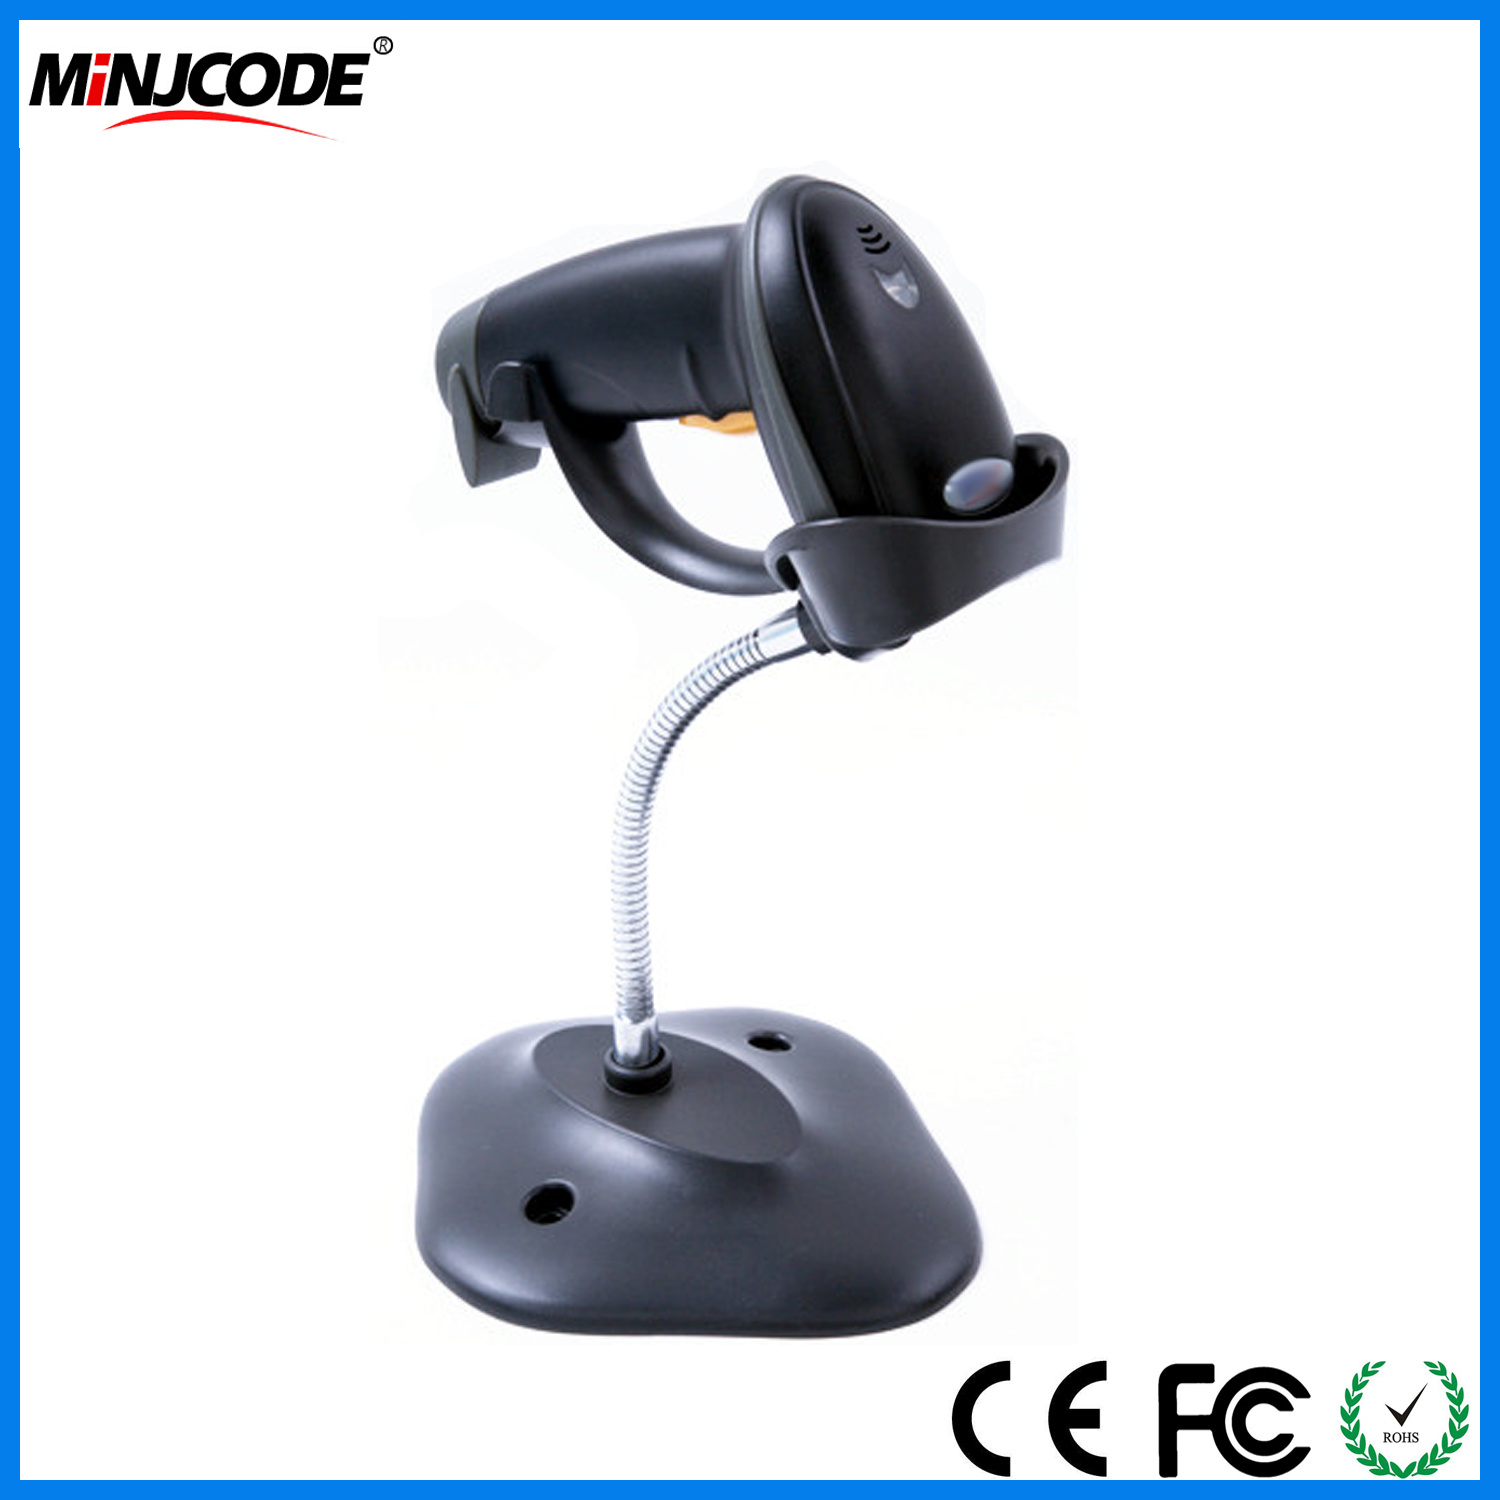 [Hot Item] Hands Free Barcode Scanner Reader with Bracket, High Speed 1d  Automatic Auto Sense Mj2809at